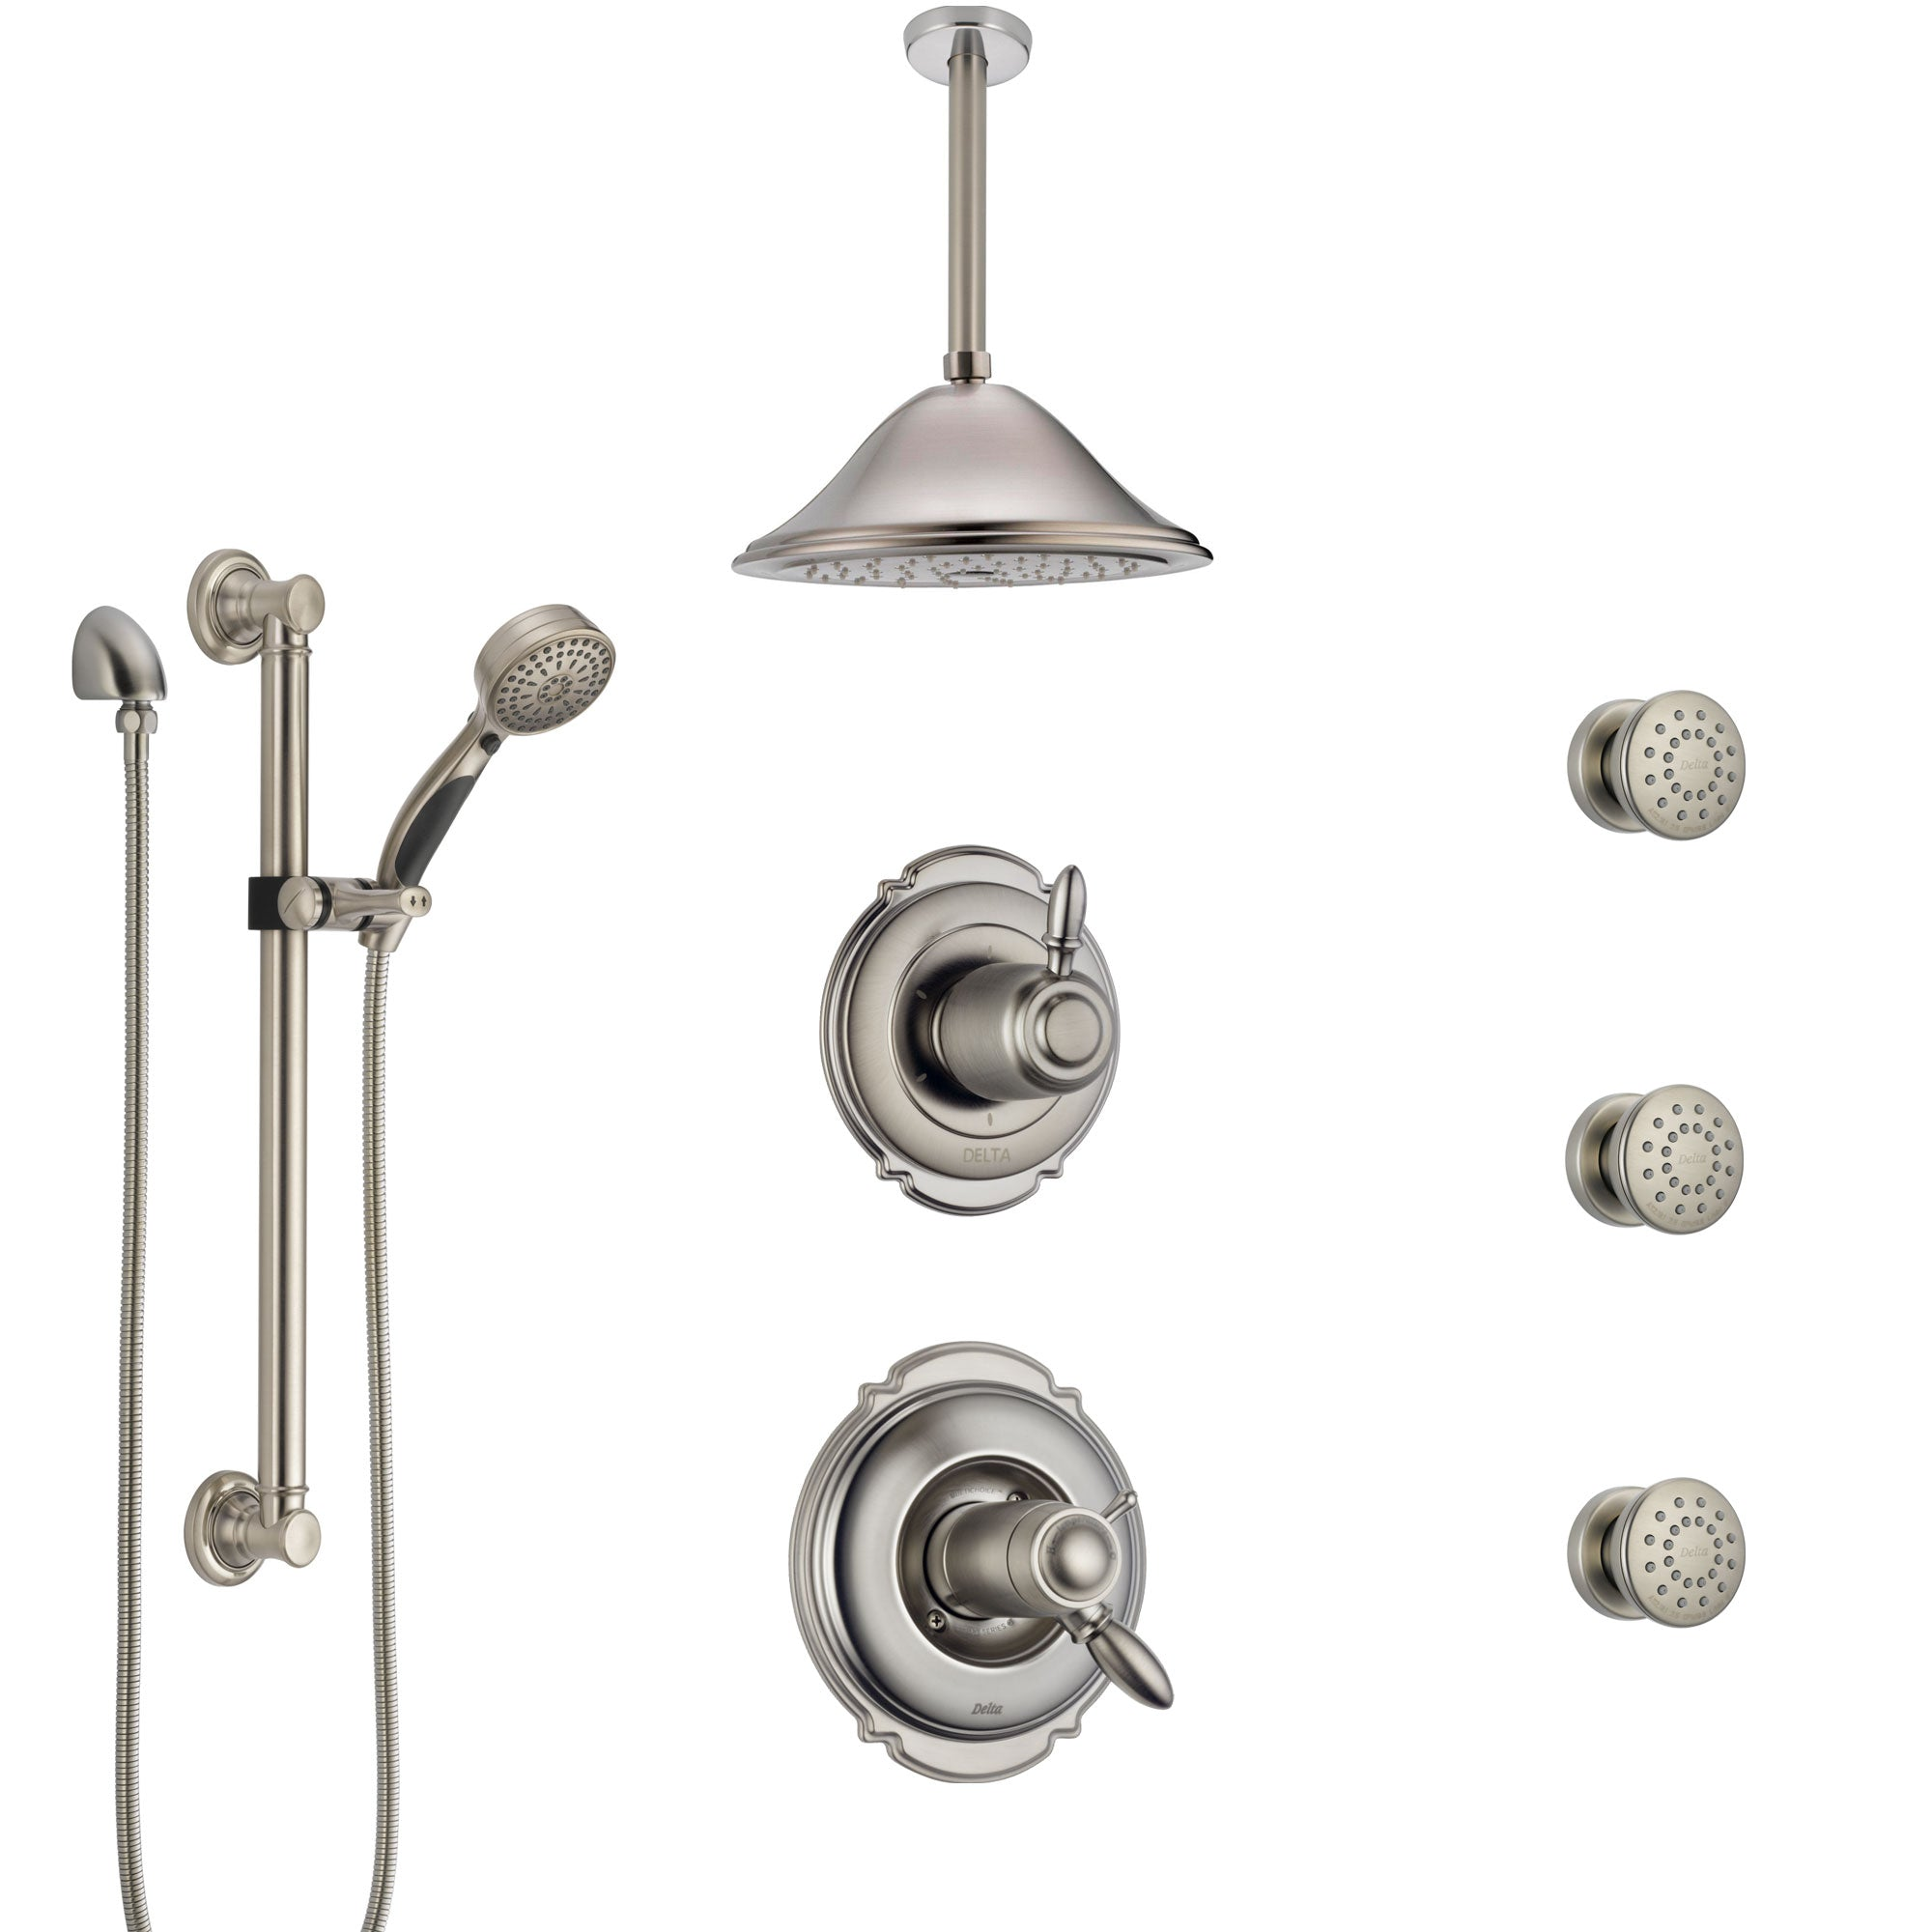 Delta Victorian Dual Thermostatic Control Stainless Steel Finish Shower System with Ceiling Showerhead, 3 Body Jets, Grab Bar Hand Spray SS17T552SS8